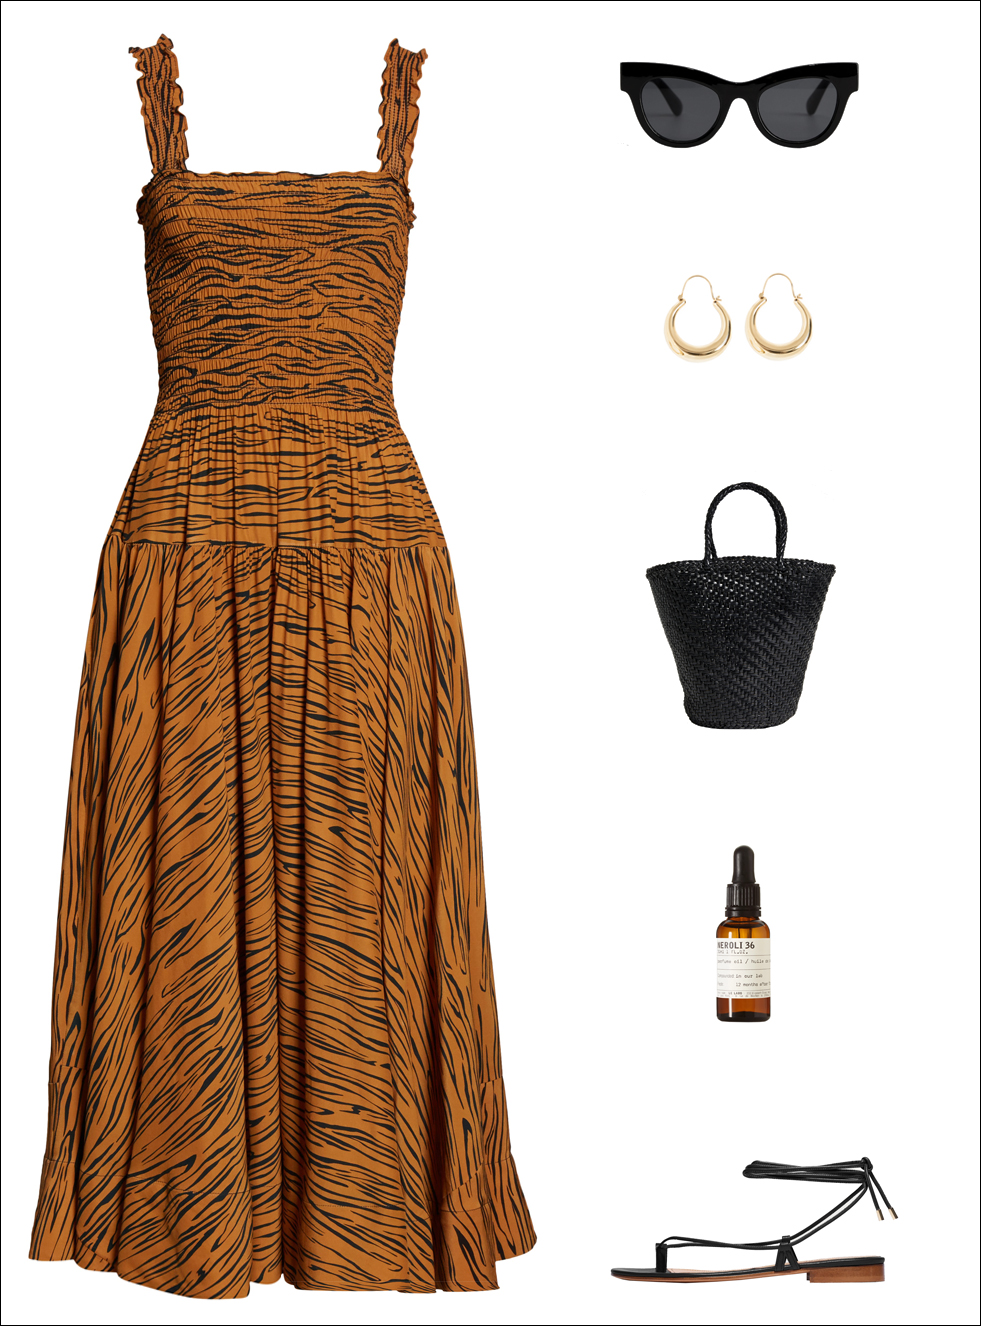 How to Style an Animal Print Dress for Summer — Tiger-Print Dress, Cat-Eye Sunglasses, Gold Earrings, Black Basket Bag, Neroli Fragrance, anf Ankle-Wrap Flat Sandals